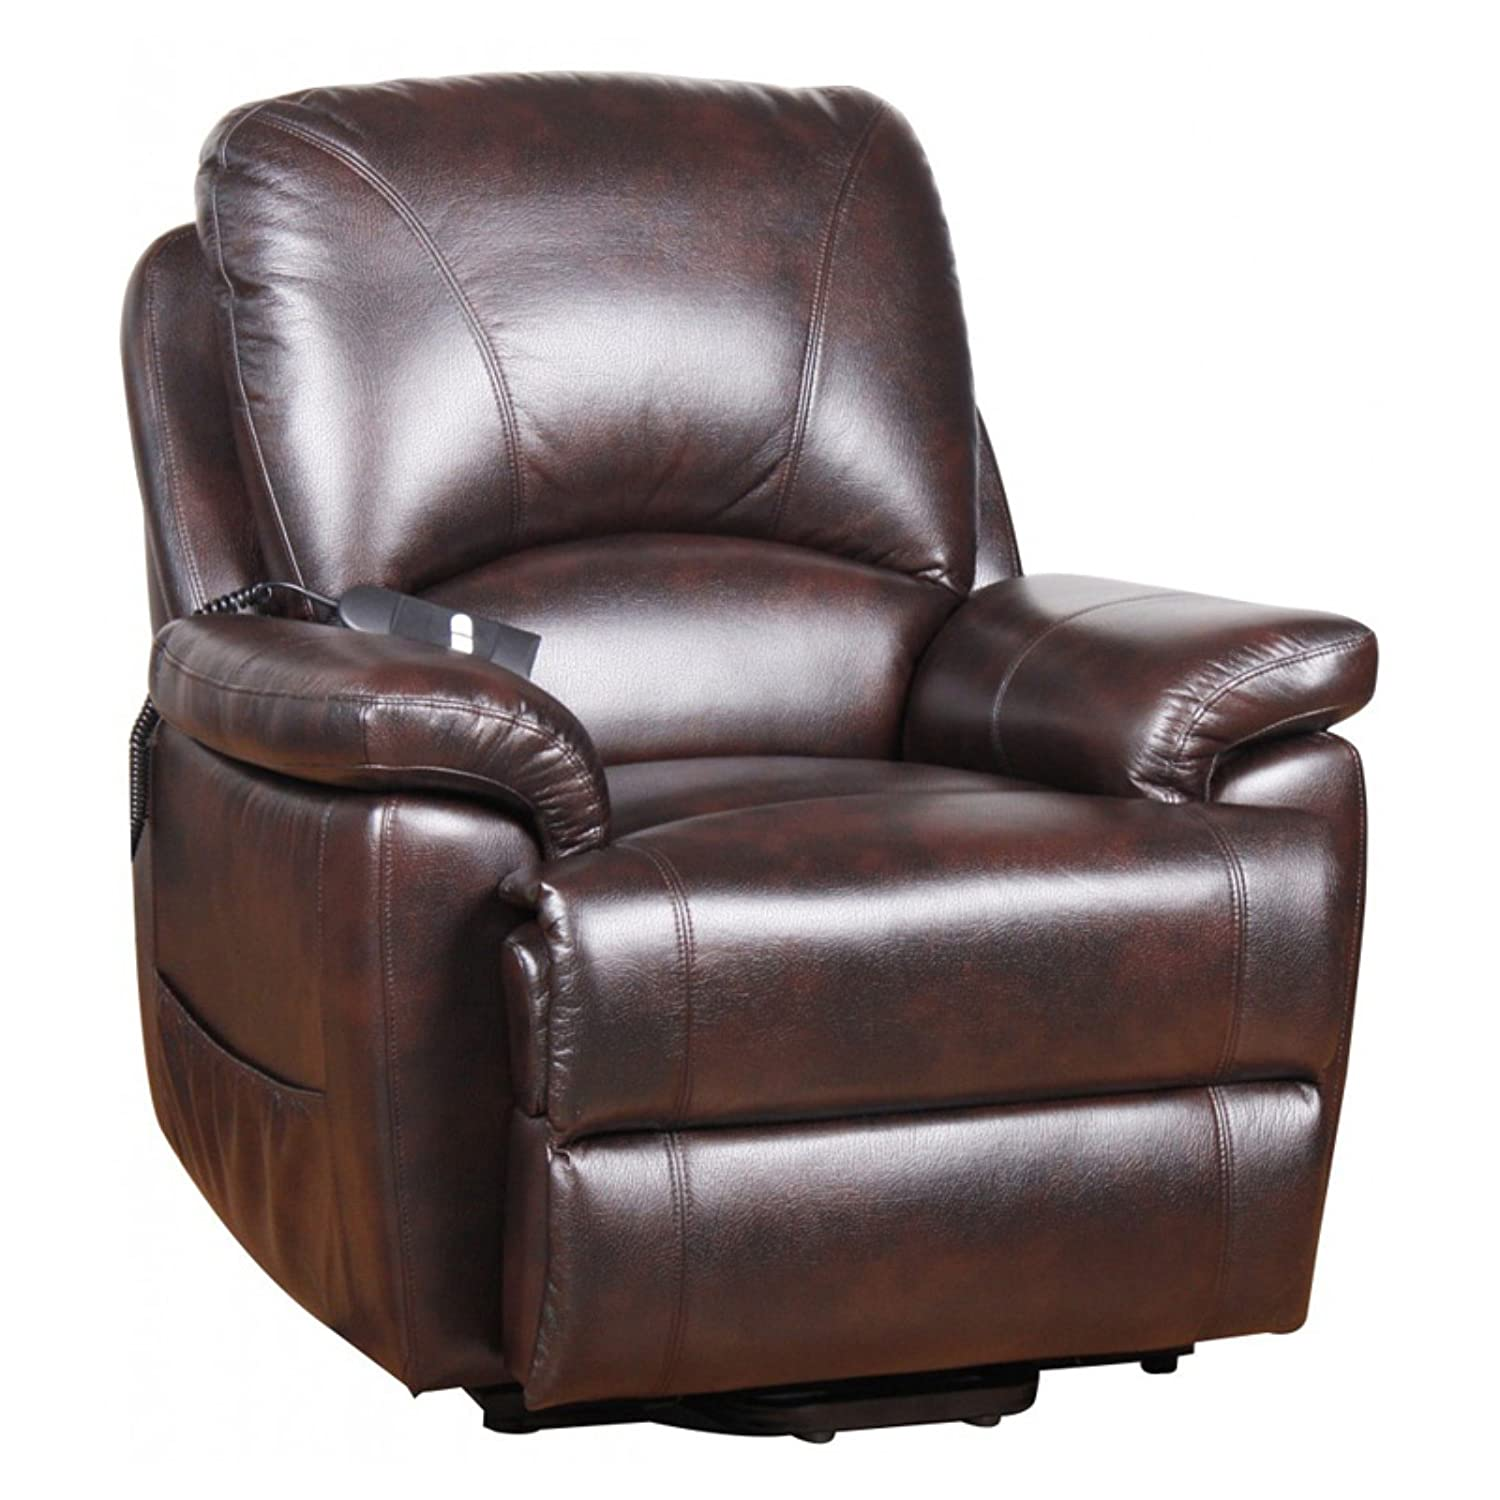 glider living room zoom item to serta brown recliners hover furniture chair durango recliner product saddle